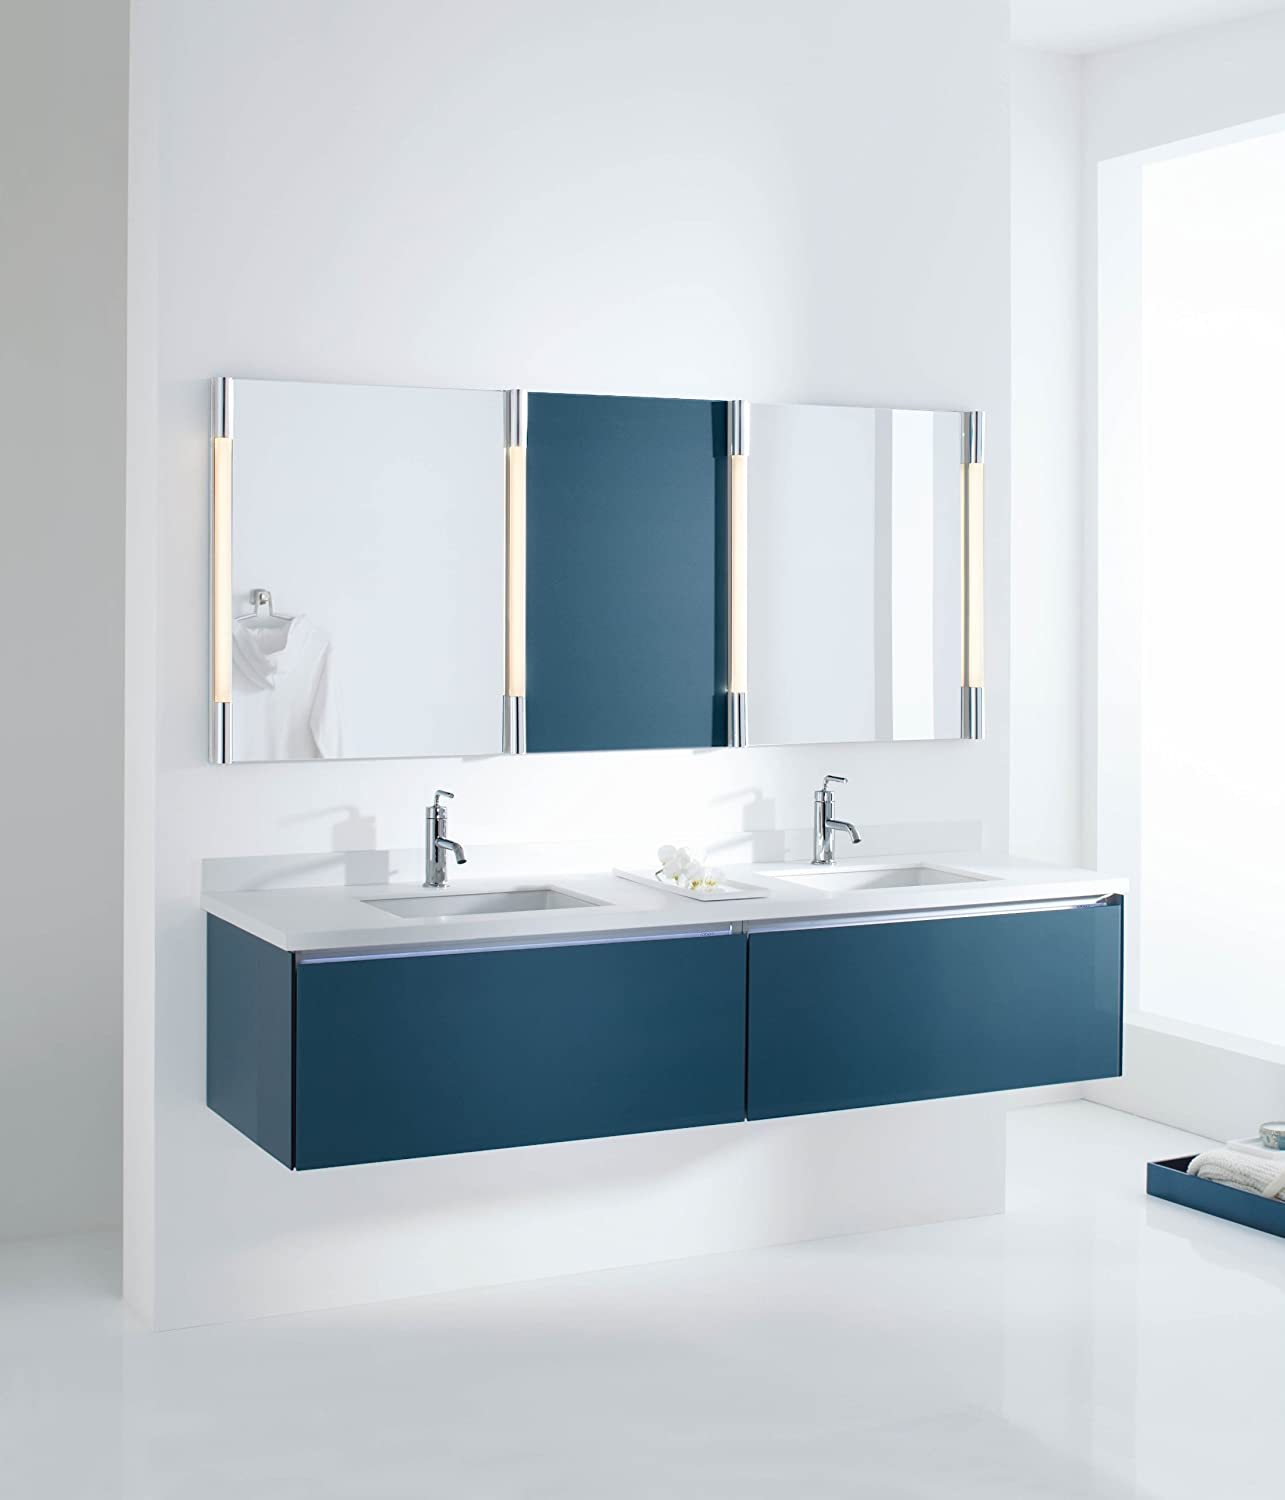 KOHLER K-2882-95 Verticyl Rectangle Undercounter Bathroom Sink, Ice ...